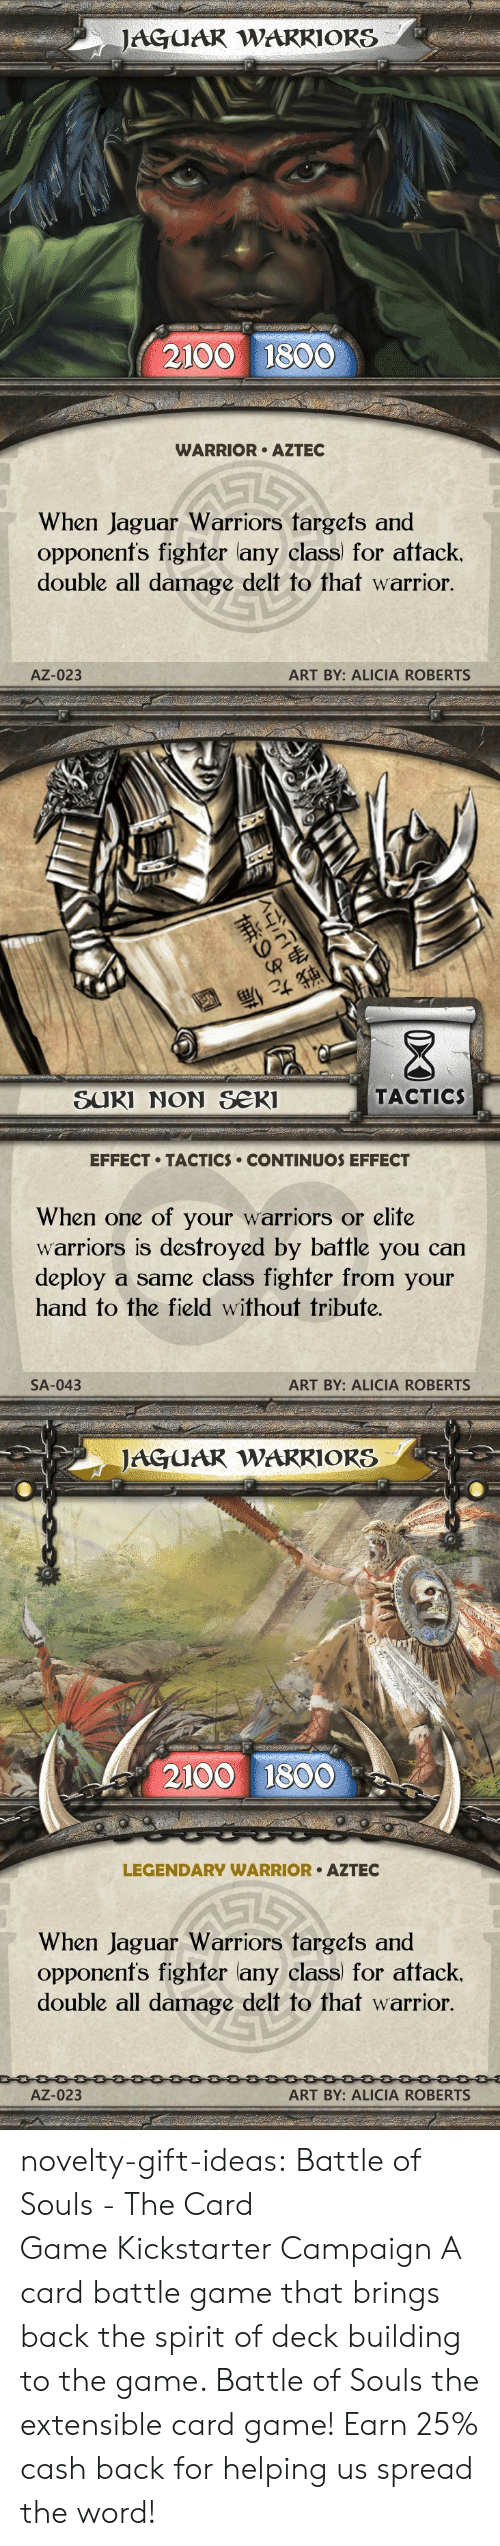 roberts: JAGUAR WARRIORS  2100 1800  WARRIOR AZTEC  When Jaguar Warriors targets and  opponenfs fighter lany class for attack.  double all damage delt to that warrior.  AZ-023  ART BY: ALICIA ROBERTS   退  SUKI NON Se  TACTIC  EFFECT TACTICS CONTINUOS EFFECT  When one of your warriors or elite  warriors is destroyed by battle you can  deploy a same class fighfer from your  hand to the field without tribute.  SA-043  ART BY: ALICIA ROBERTS   JAGUAR WAKRIORS  2100 1800  LEGENDARY WARRIOR AZTEC  When Jaguar Warriors fargets and  opponenfs fighter lany class) for attack.  double all damage delt to that warrior  AZ-023  ART BY: ALICIA ROBERTS novelty-gift-ideas: Battle of Souls - The Card GameKickstarter Campaign A card battle game that brings back the spirit of deck building to the game. Battle of Souls the extensible card game!   Earn 25% cash back for helping us spread the word!